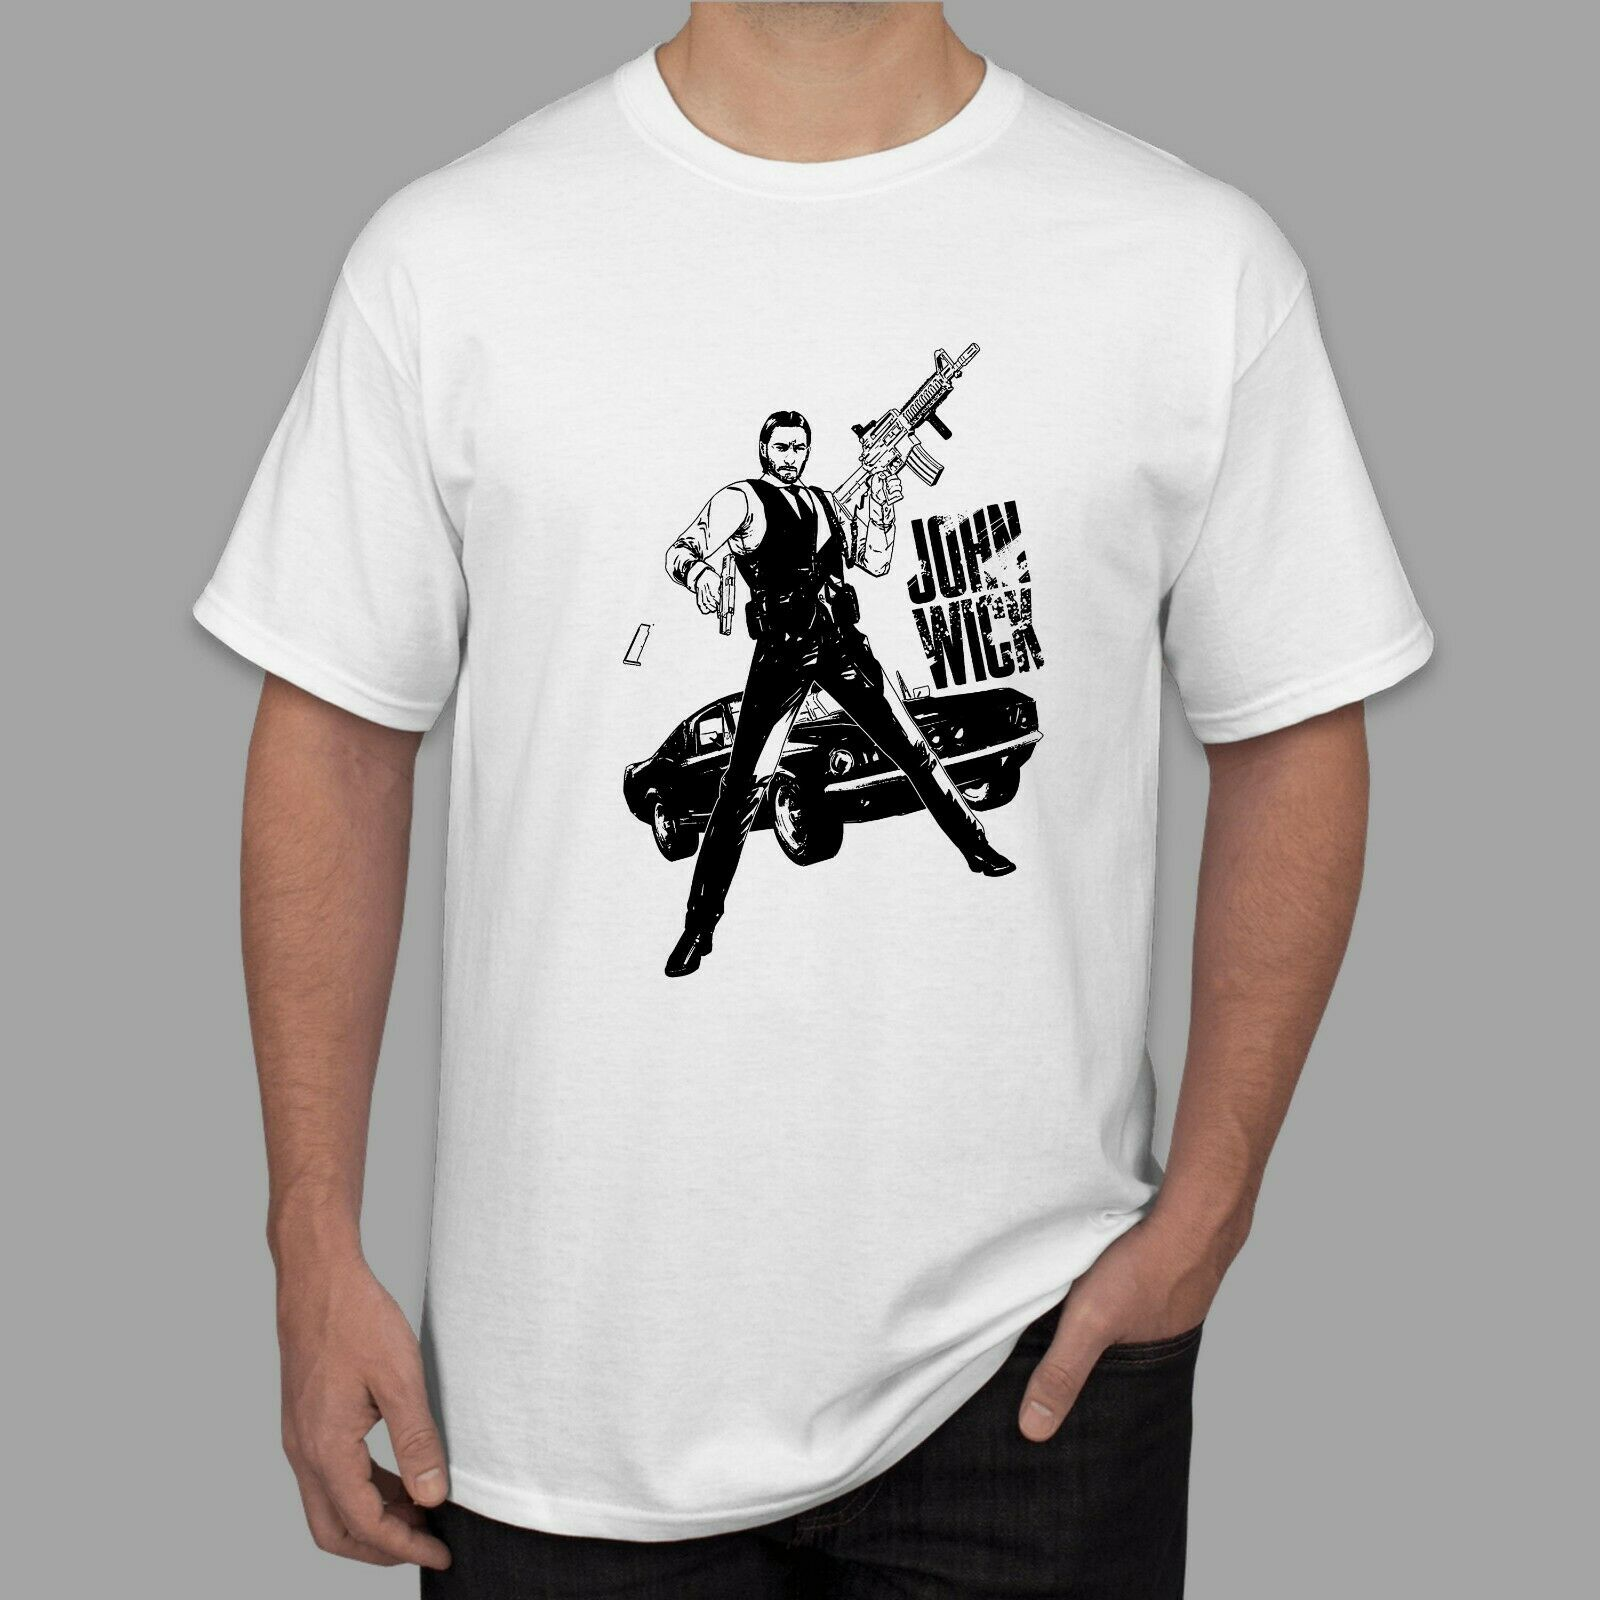 New John Wick Actioner Thrillerer Movie Mens T Shirt White Sizes S-3XL feyenoord liverpool image